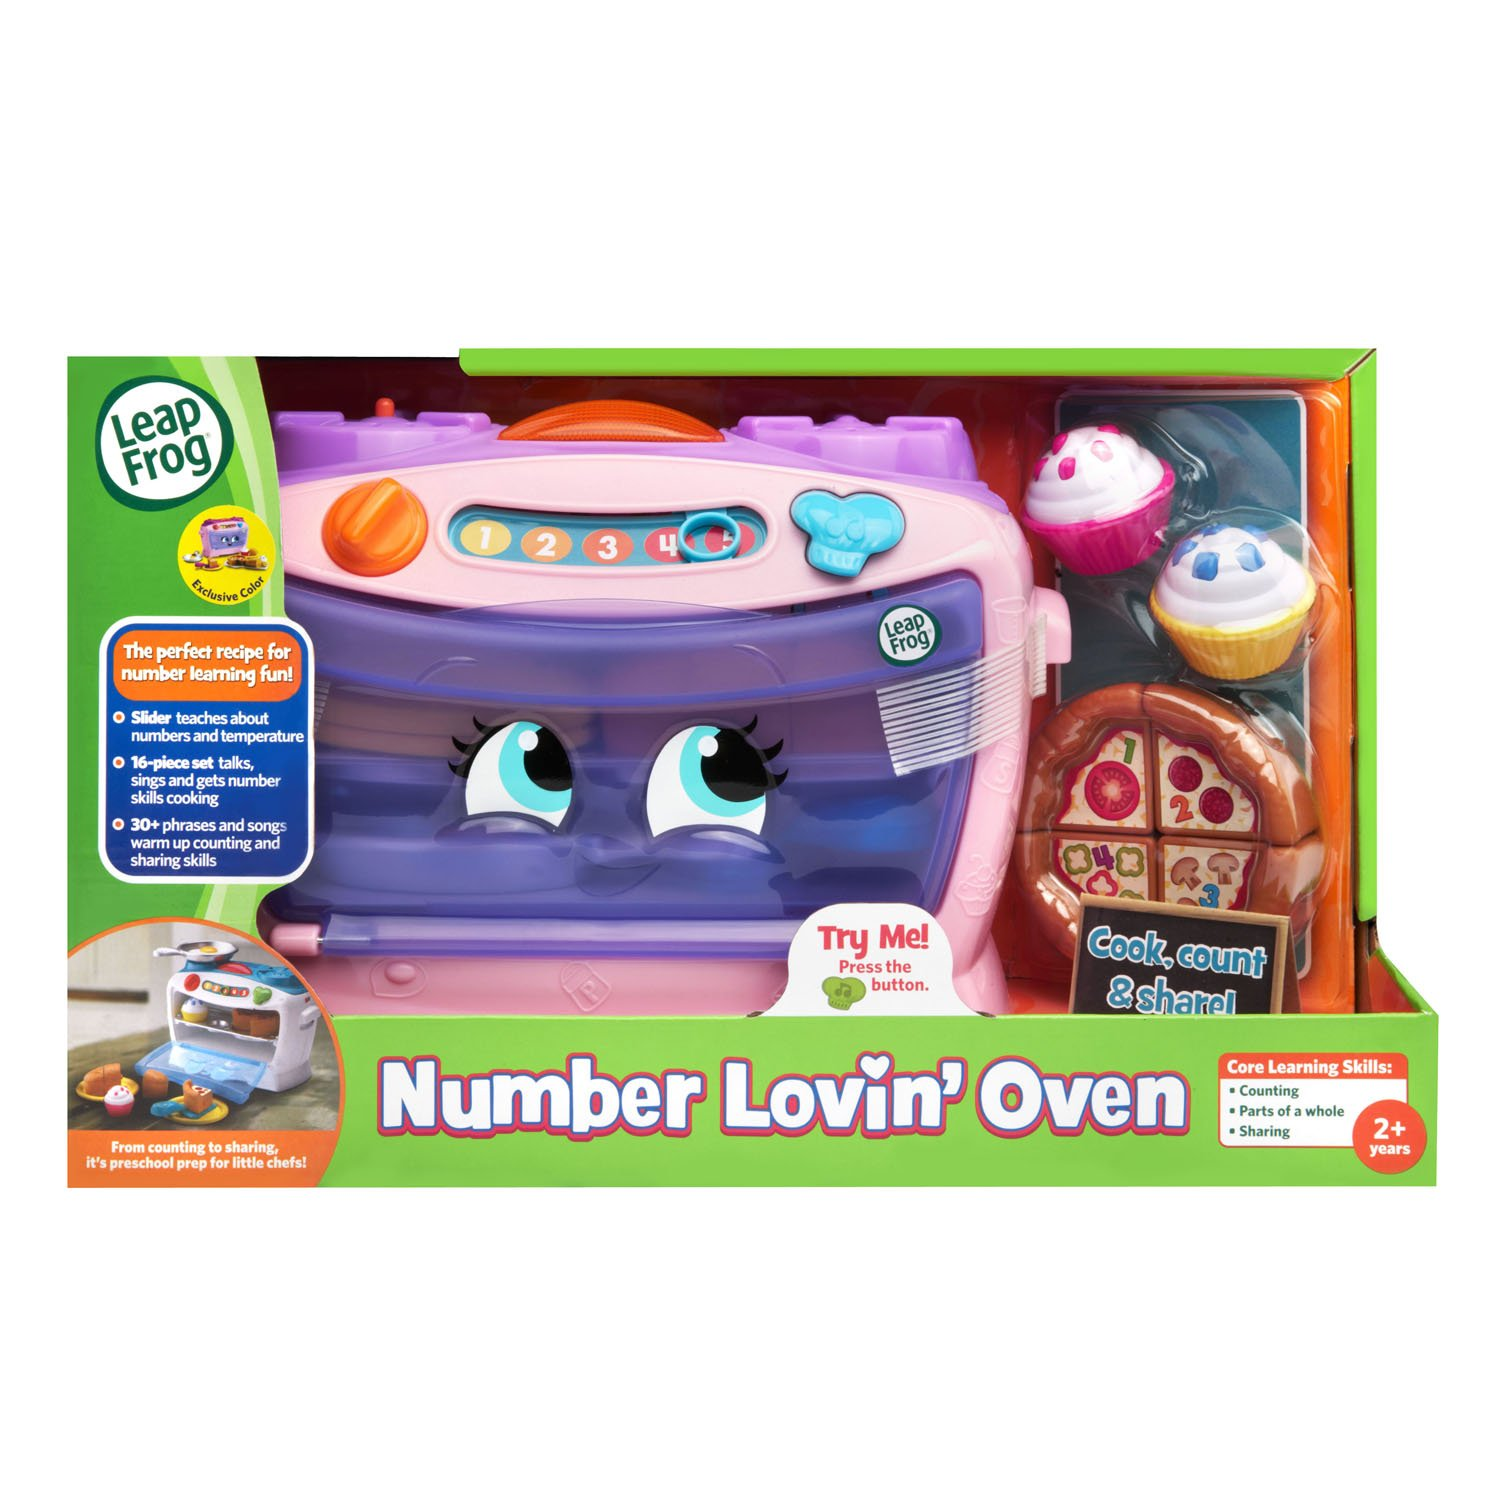 LeapFrog Number Lovin' Oven, pink (Amazon Exclusive) by LeapFrog (Image #7)